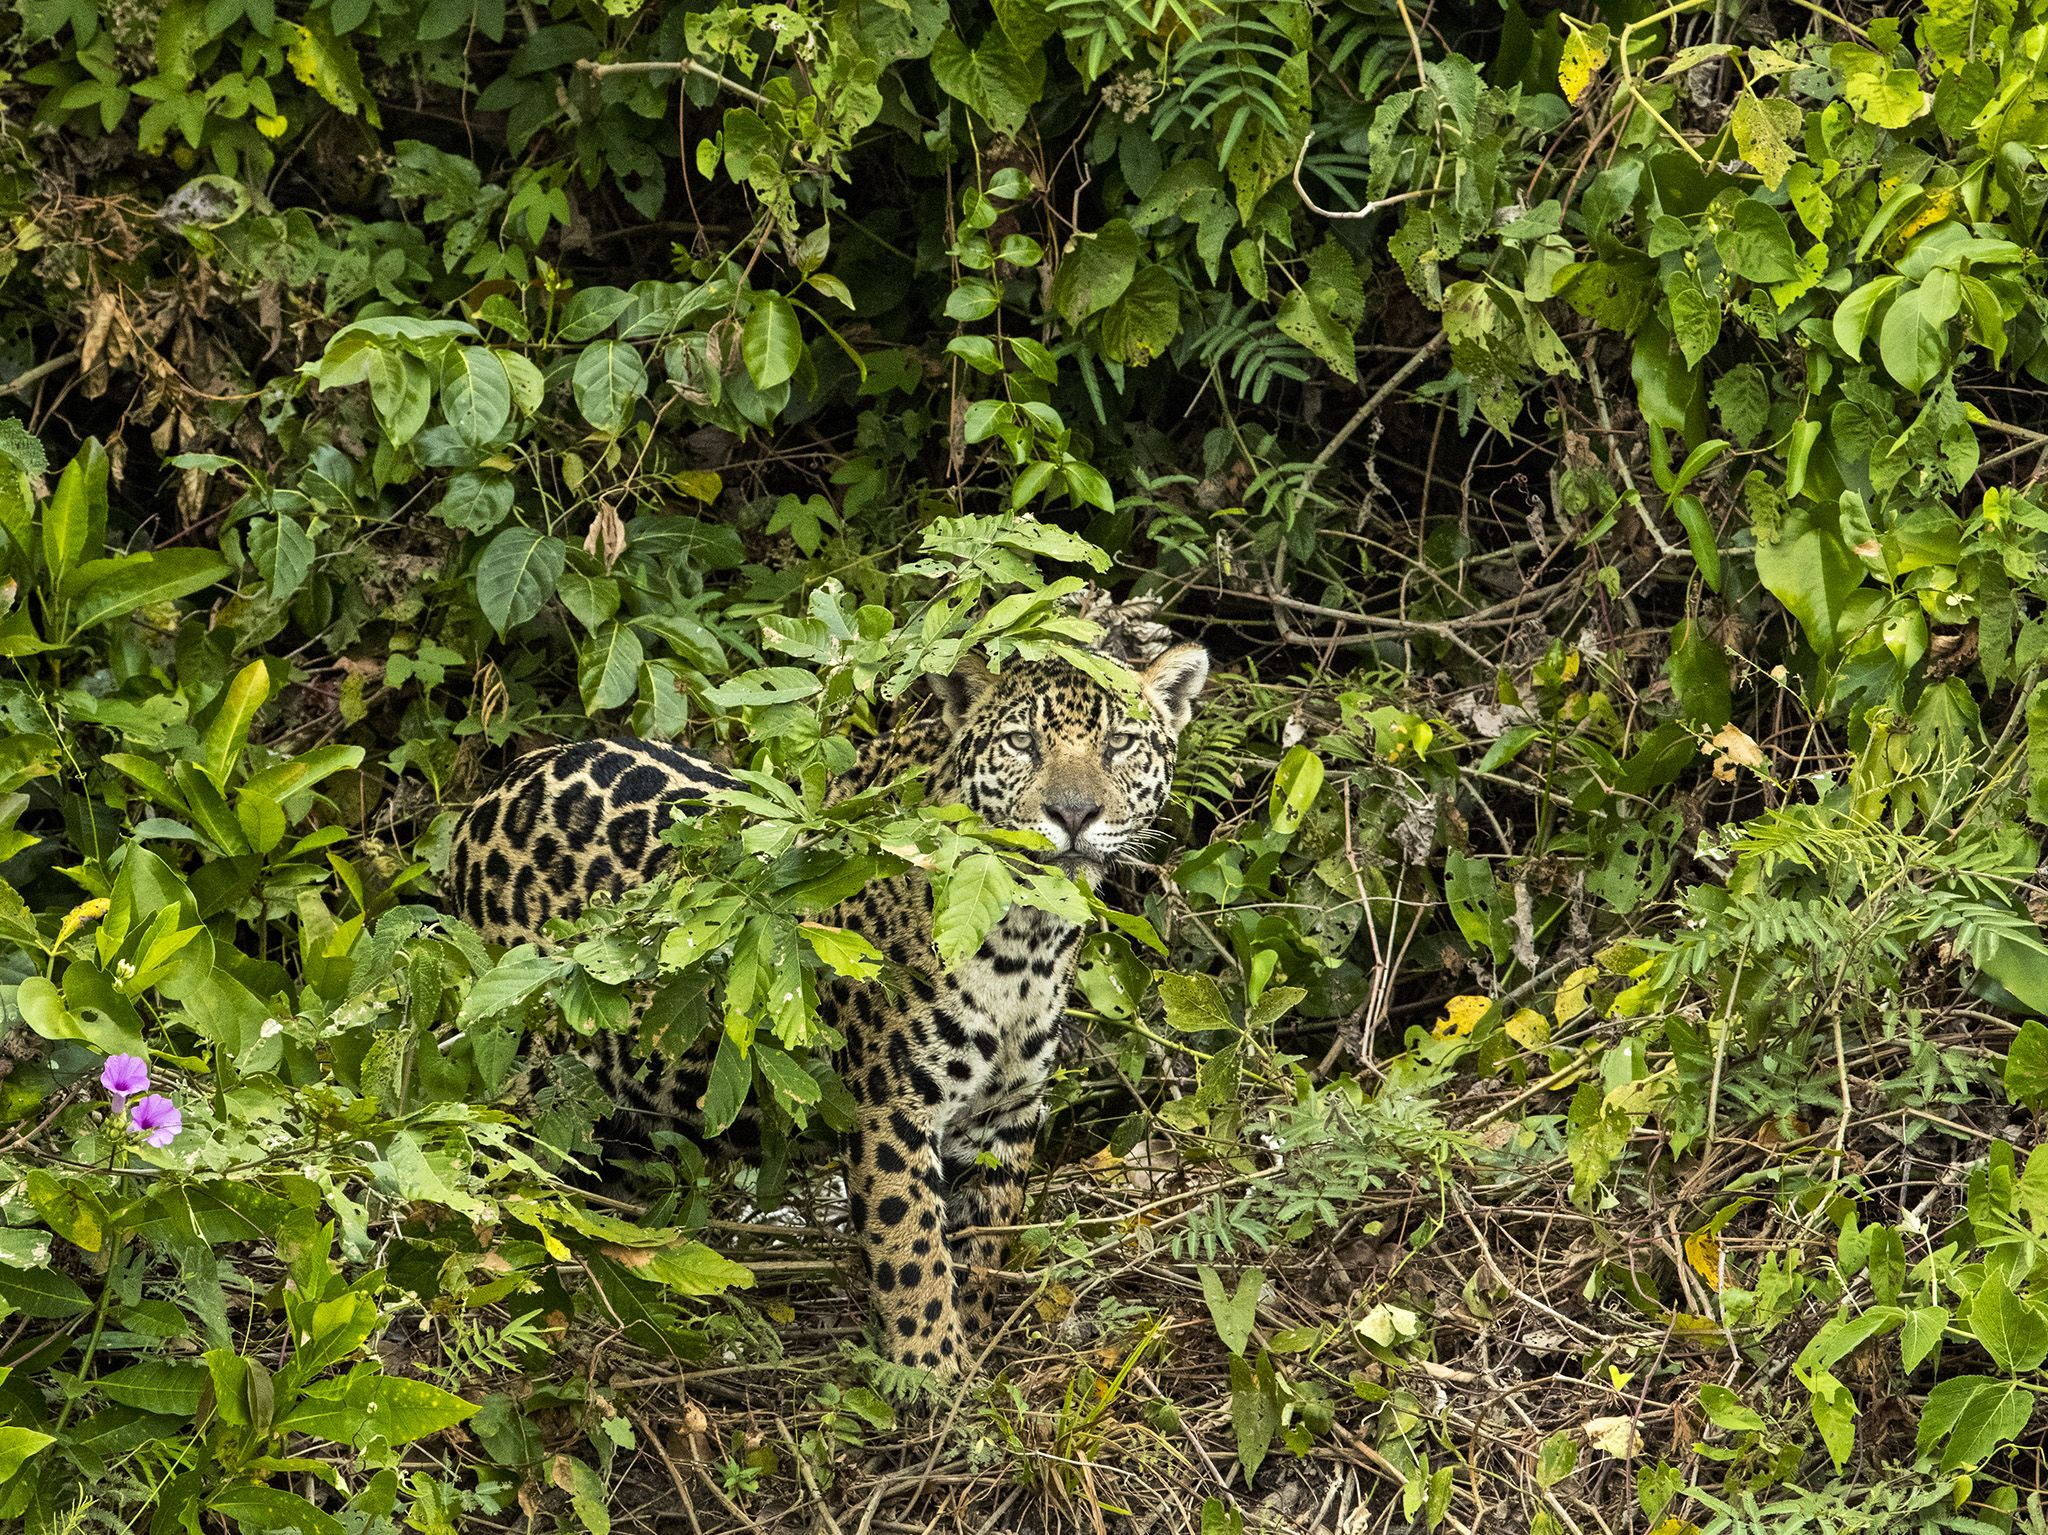 Pantanal, Brazil:  Jaguar in the bushes. This image is from Jaguar vs. Croc. [Foto del giorno - gennaio 2018]